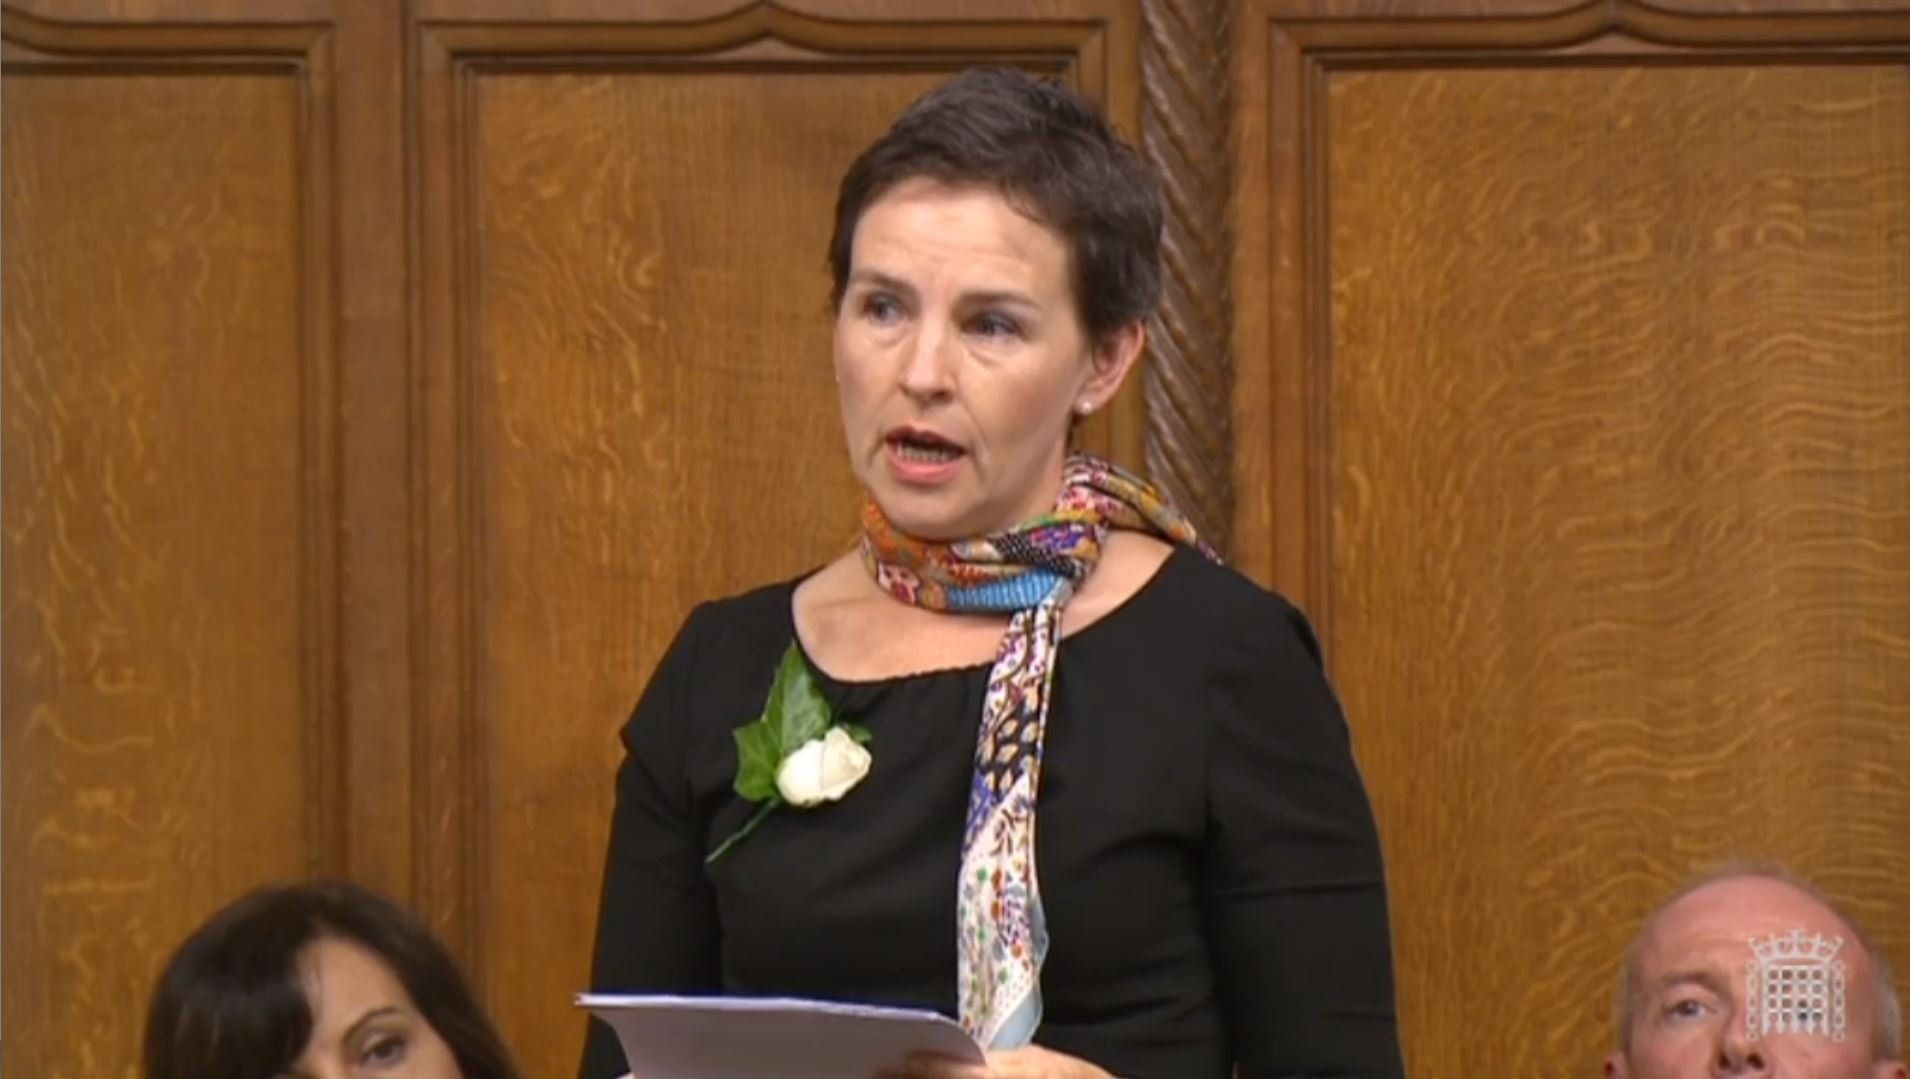 <strong>Labour MP and environment committee chair Mary Creagh: 'The effects of air pollution tend to be magnified in poorer groups'</strong>